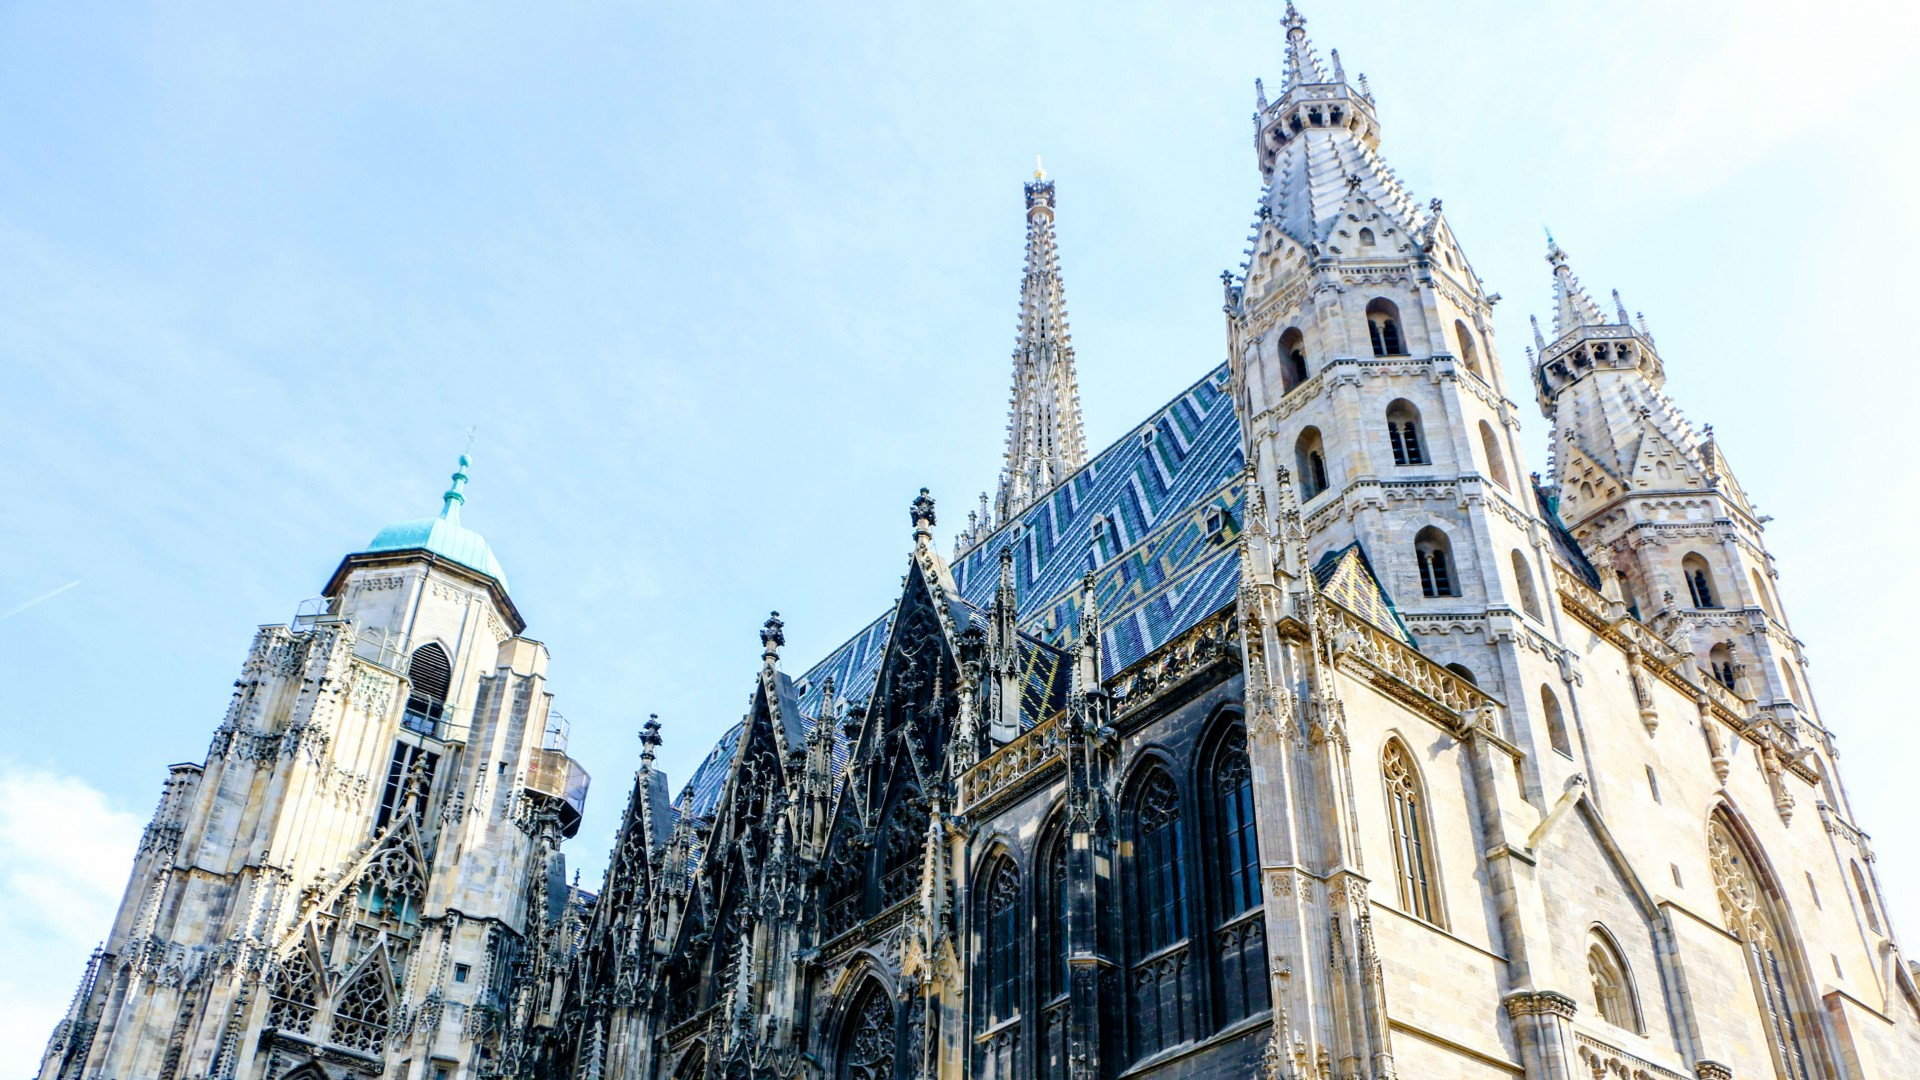 Stephansdom, Austria